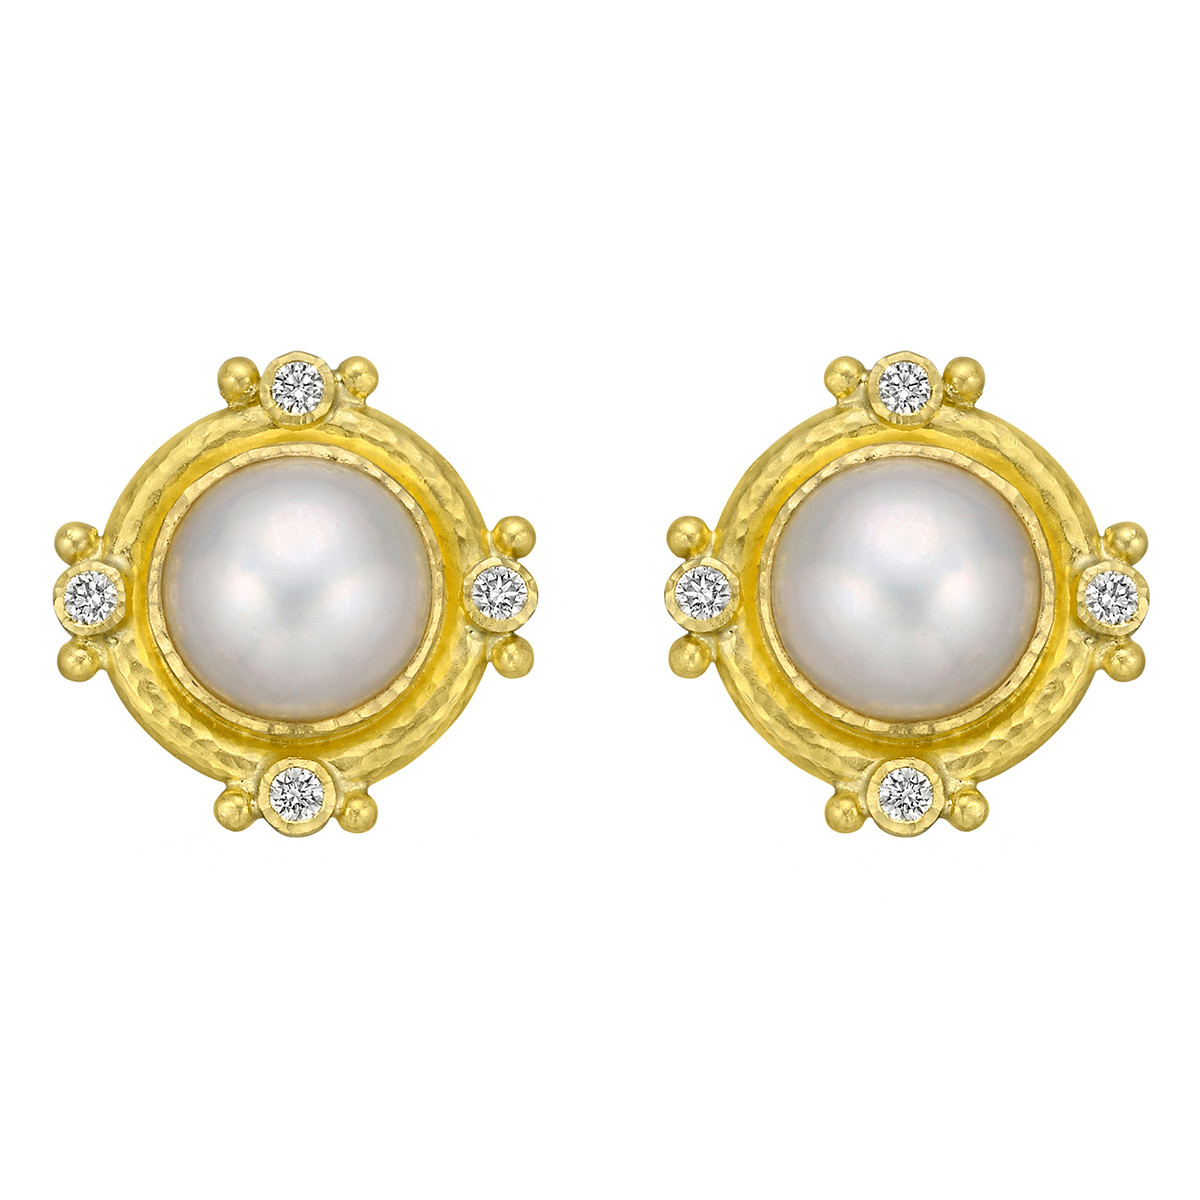 19k Yellow Gold, Mabe Pearl & Diamond Earrings